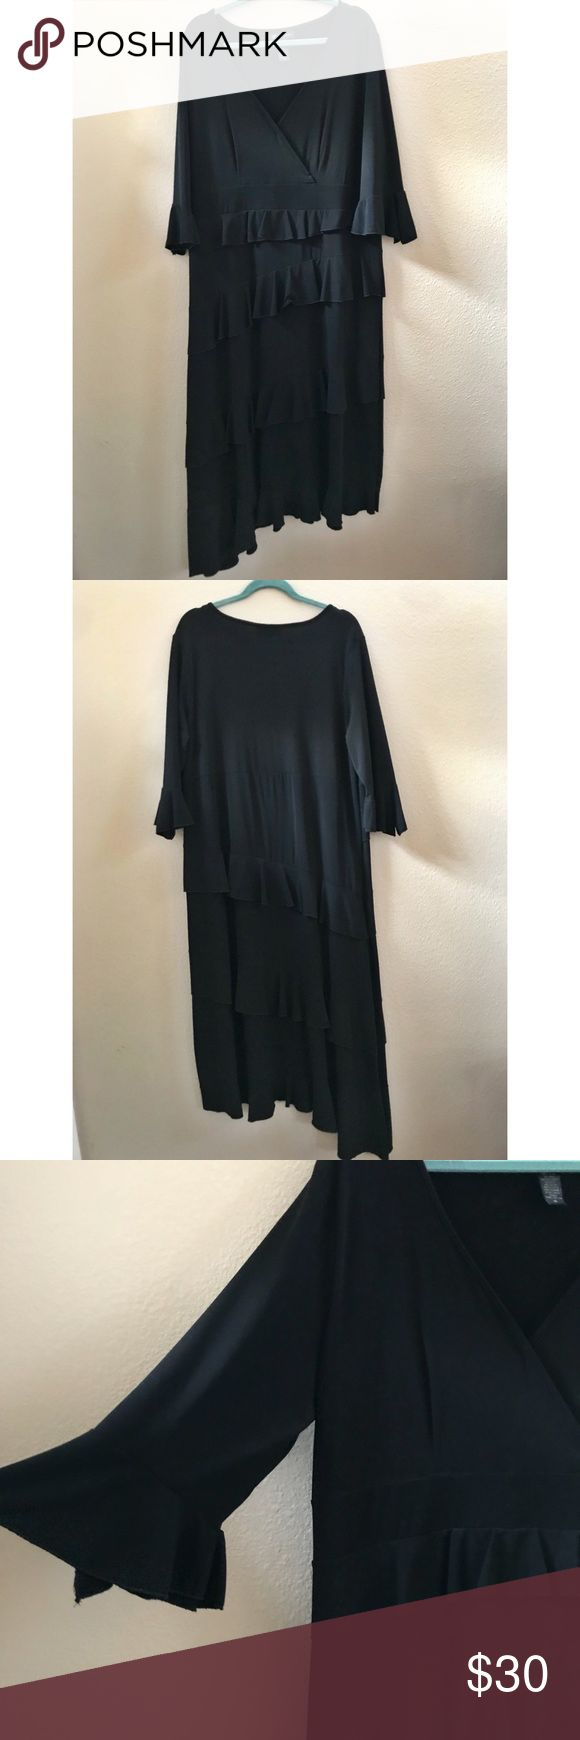 INC Black Ruffle Dress Plus Size 1X This is a black ruffle dress by INC plus size 1X. It was worn once so it's in great condition! Features an asymmetrical hem. Length from the shoulder to the shorter part of the hem is 50 inches. Fabric content featured in the photos. INC International Concepts Dresses Asymmetrical